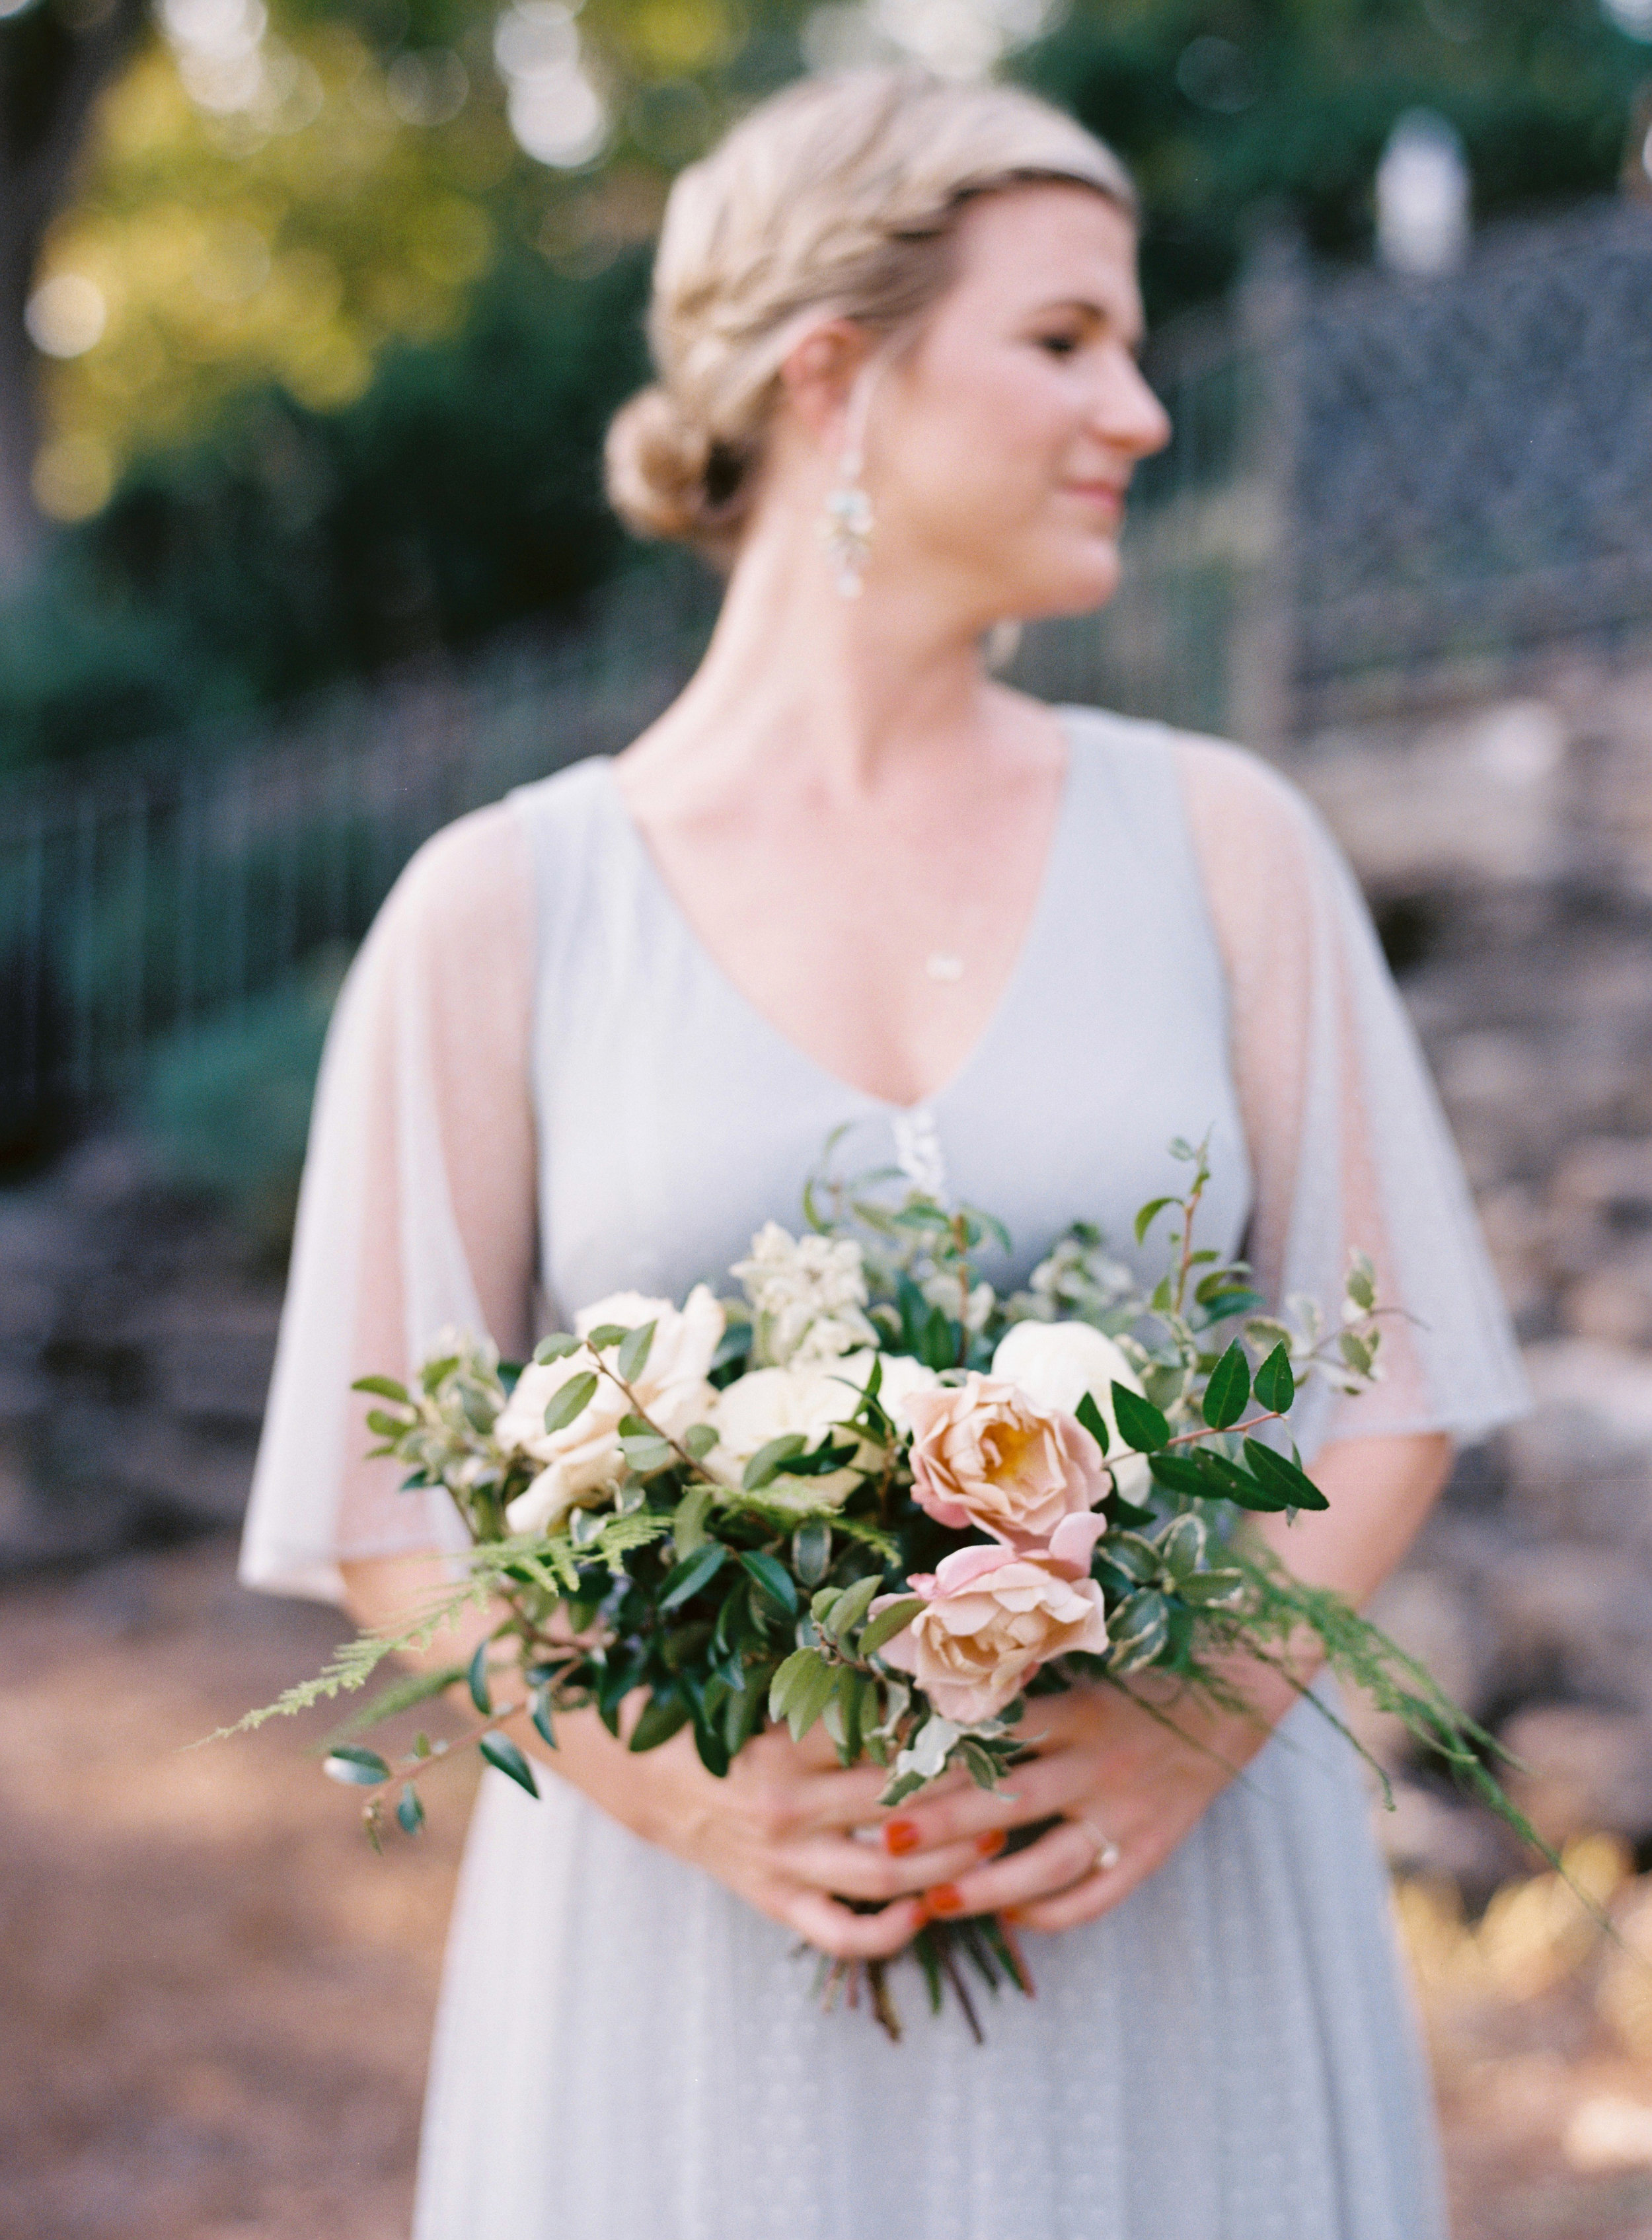 Organic bride and bridesmaid bouquet with garden roses and peonies and greenery // Nashville Wedding Florist